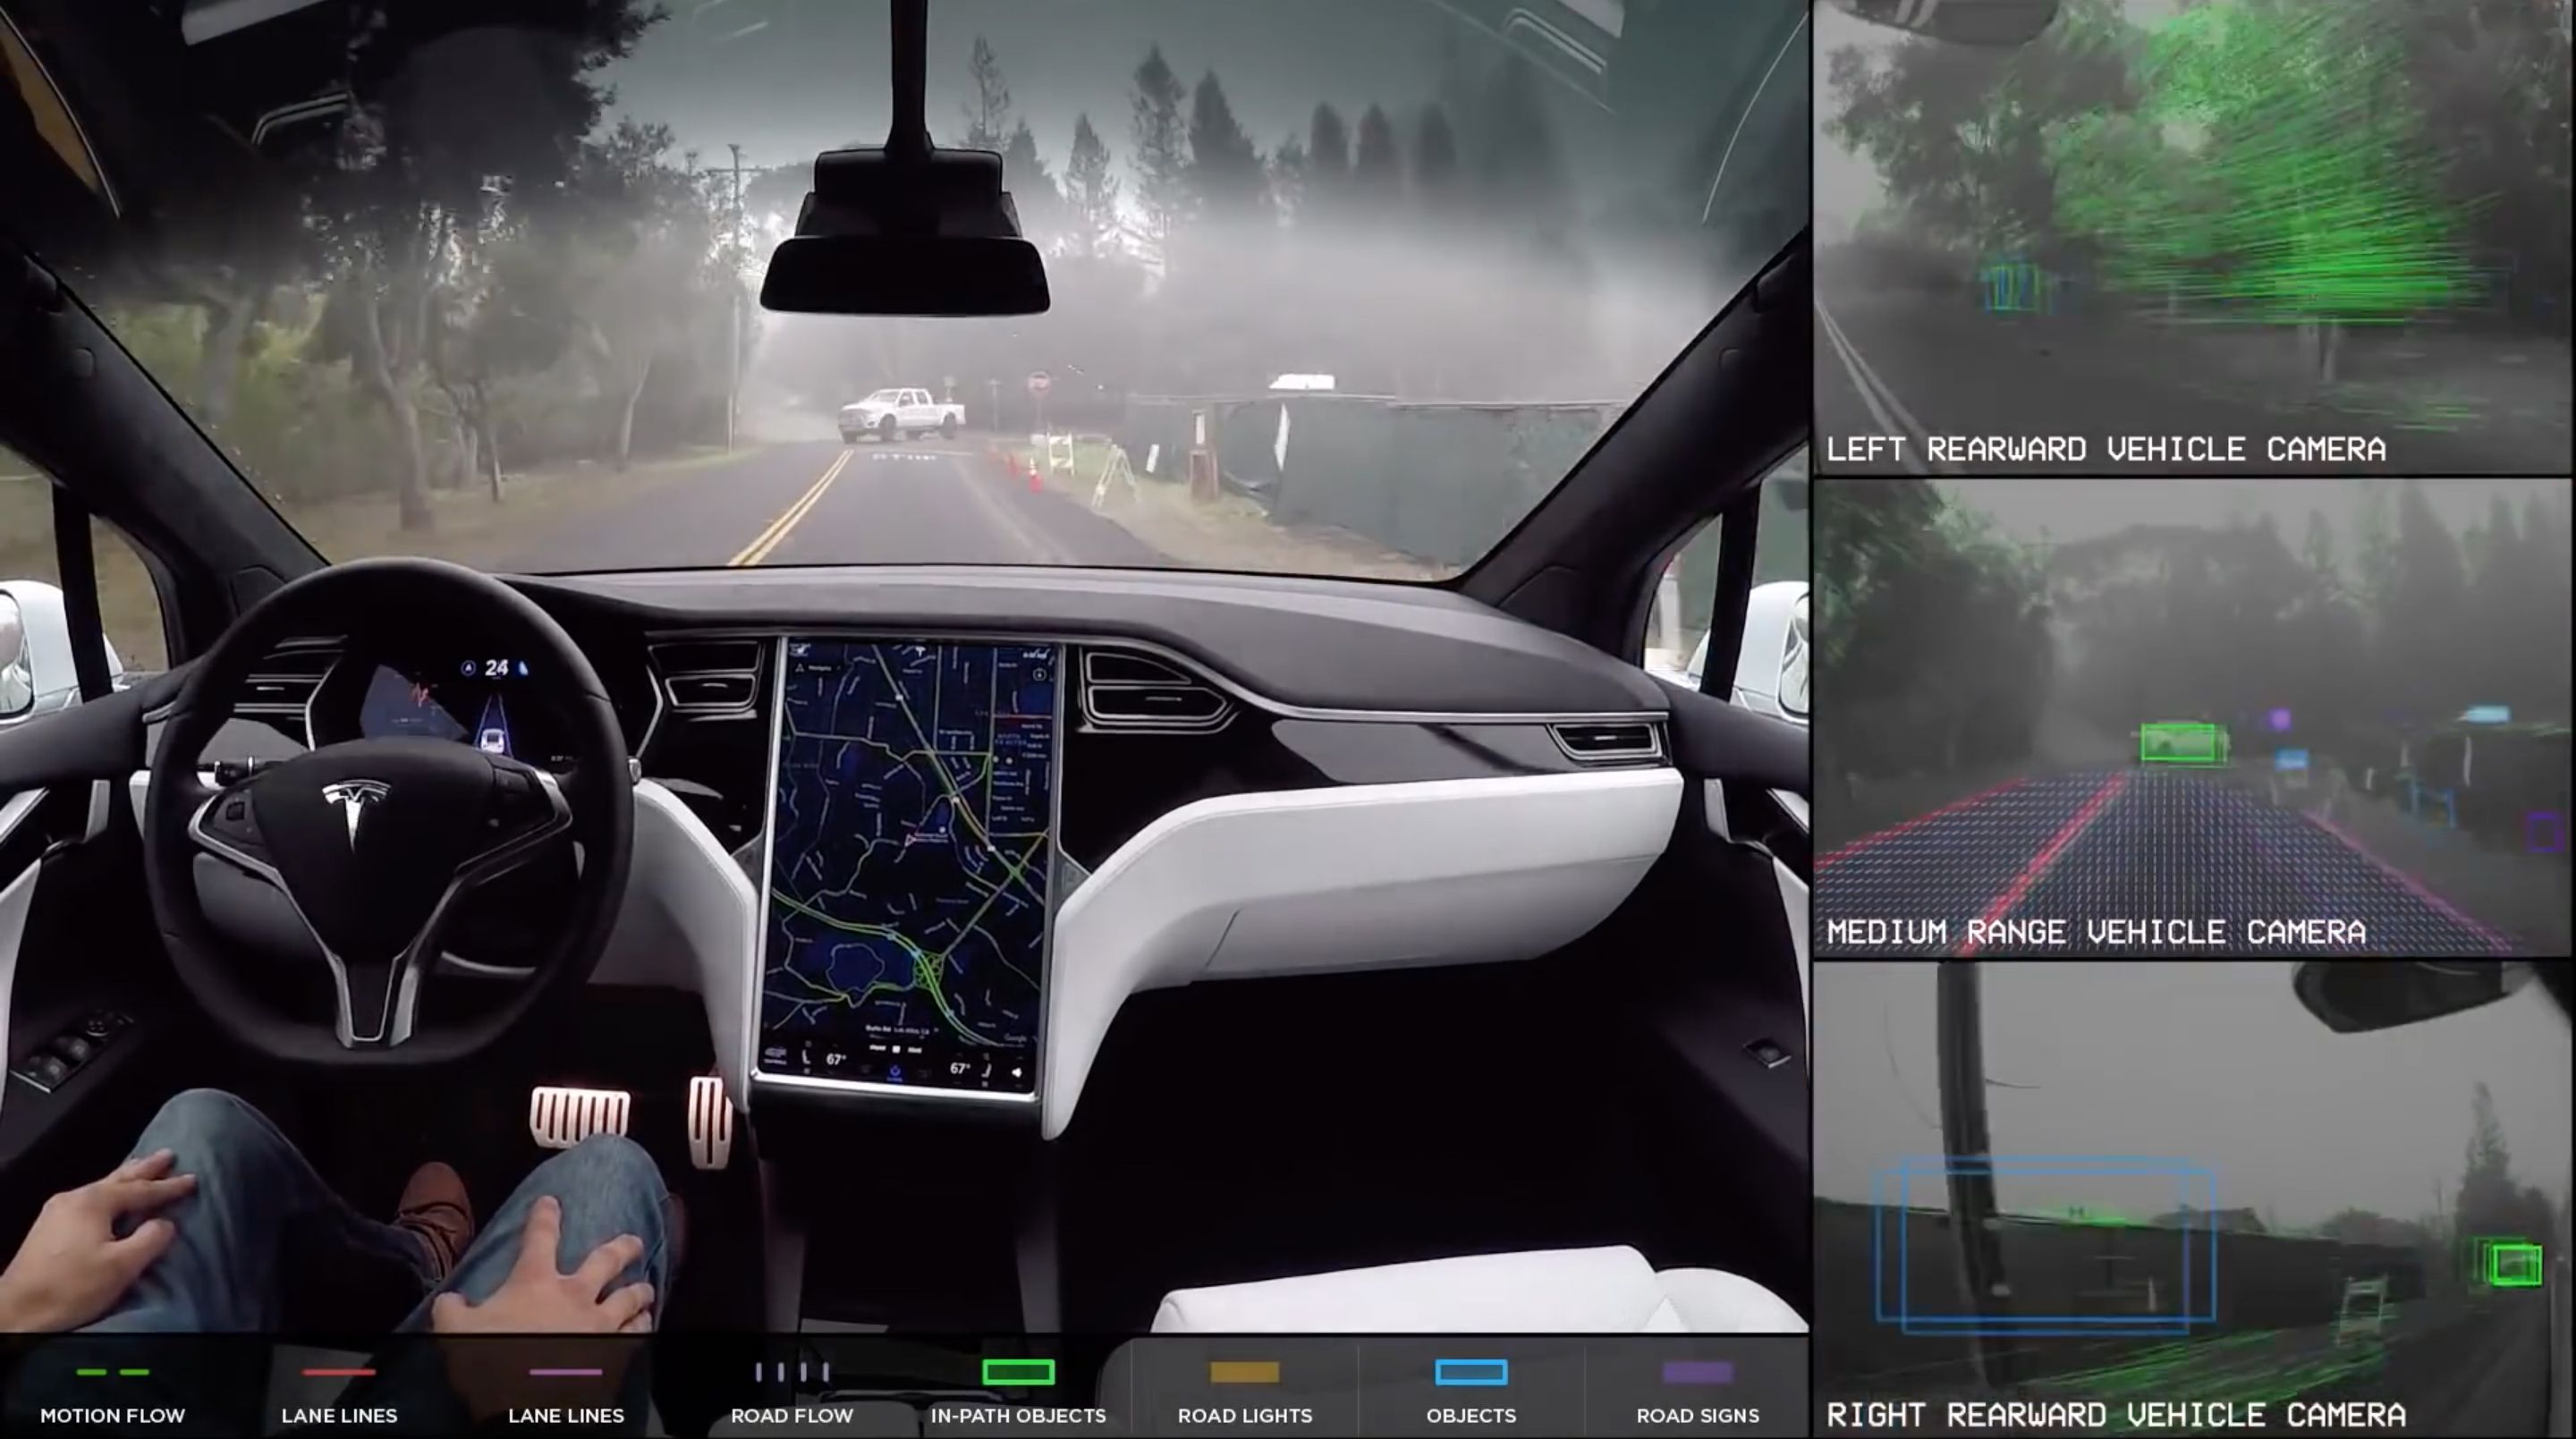 Tesla is now testing autonomous vehicles on public California roads | AutoCodes.com